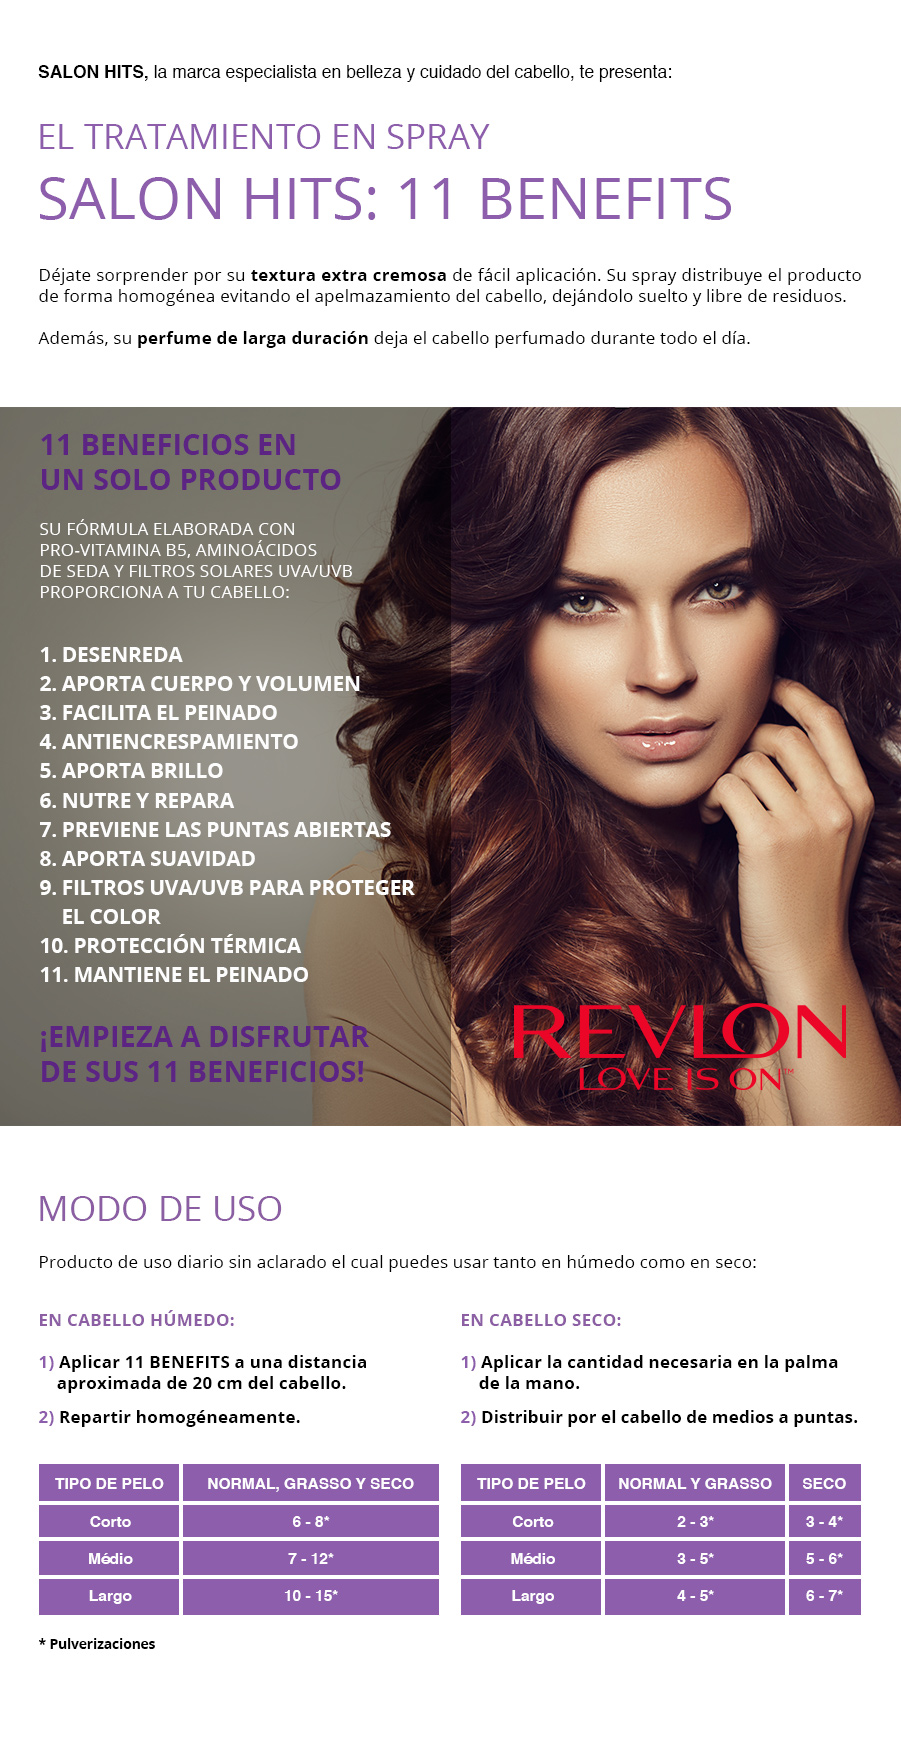 http://youzz.net/files/com_3/images/C1058%20REVLON%20CABELLO/Salon-Hits-1.jpg